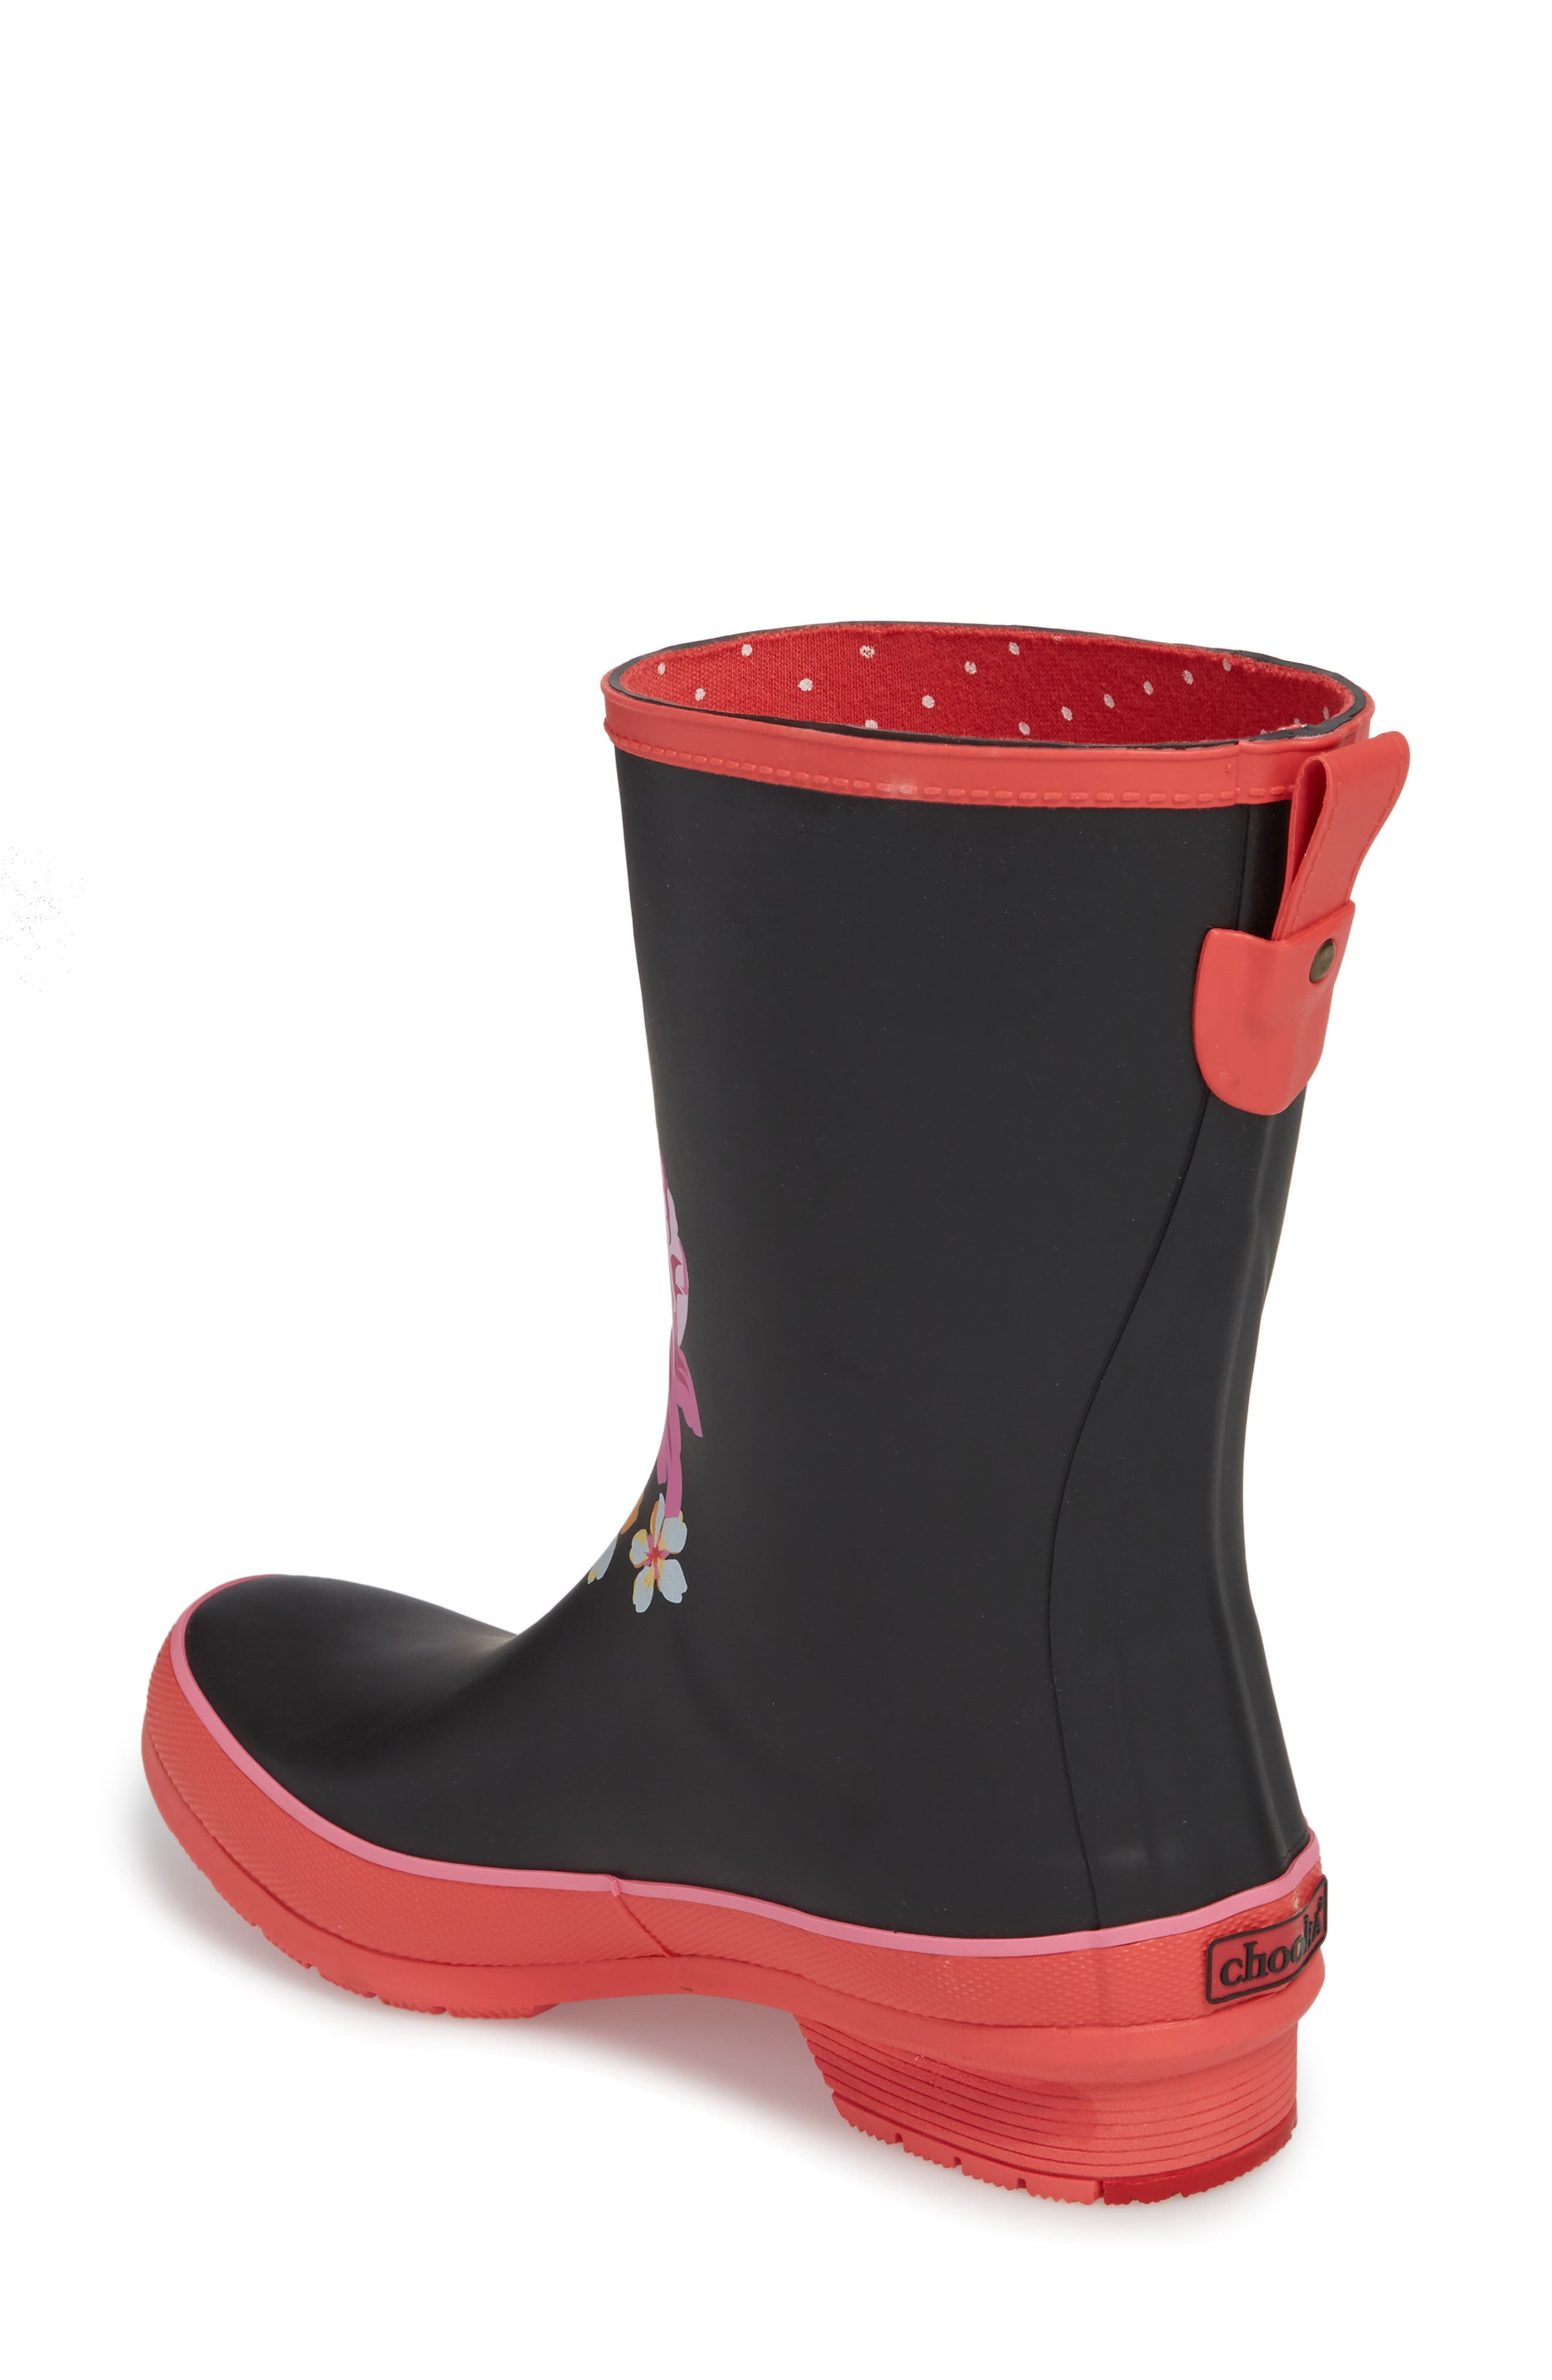 Hilde Mid Rain Boot,                             Alternate thumbnail 2, color,                             Fuchsia